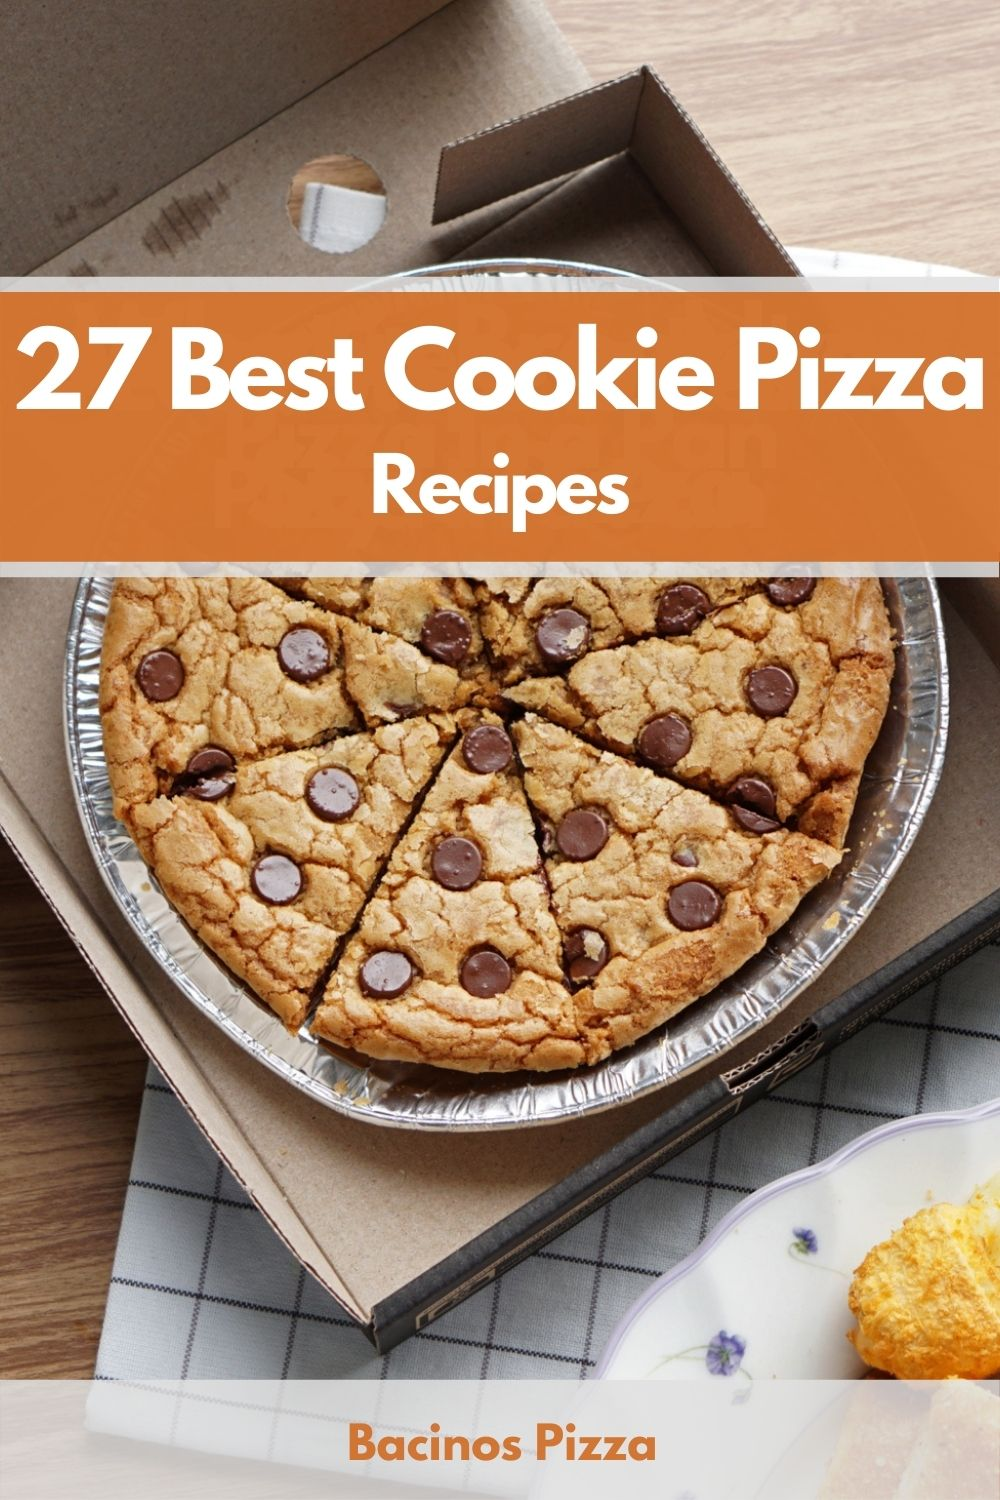 27 Best Cookie Pizza Recipes pin